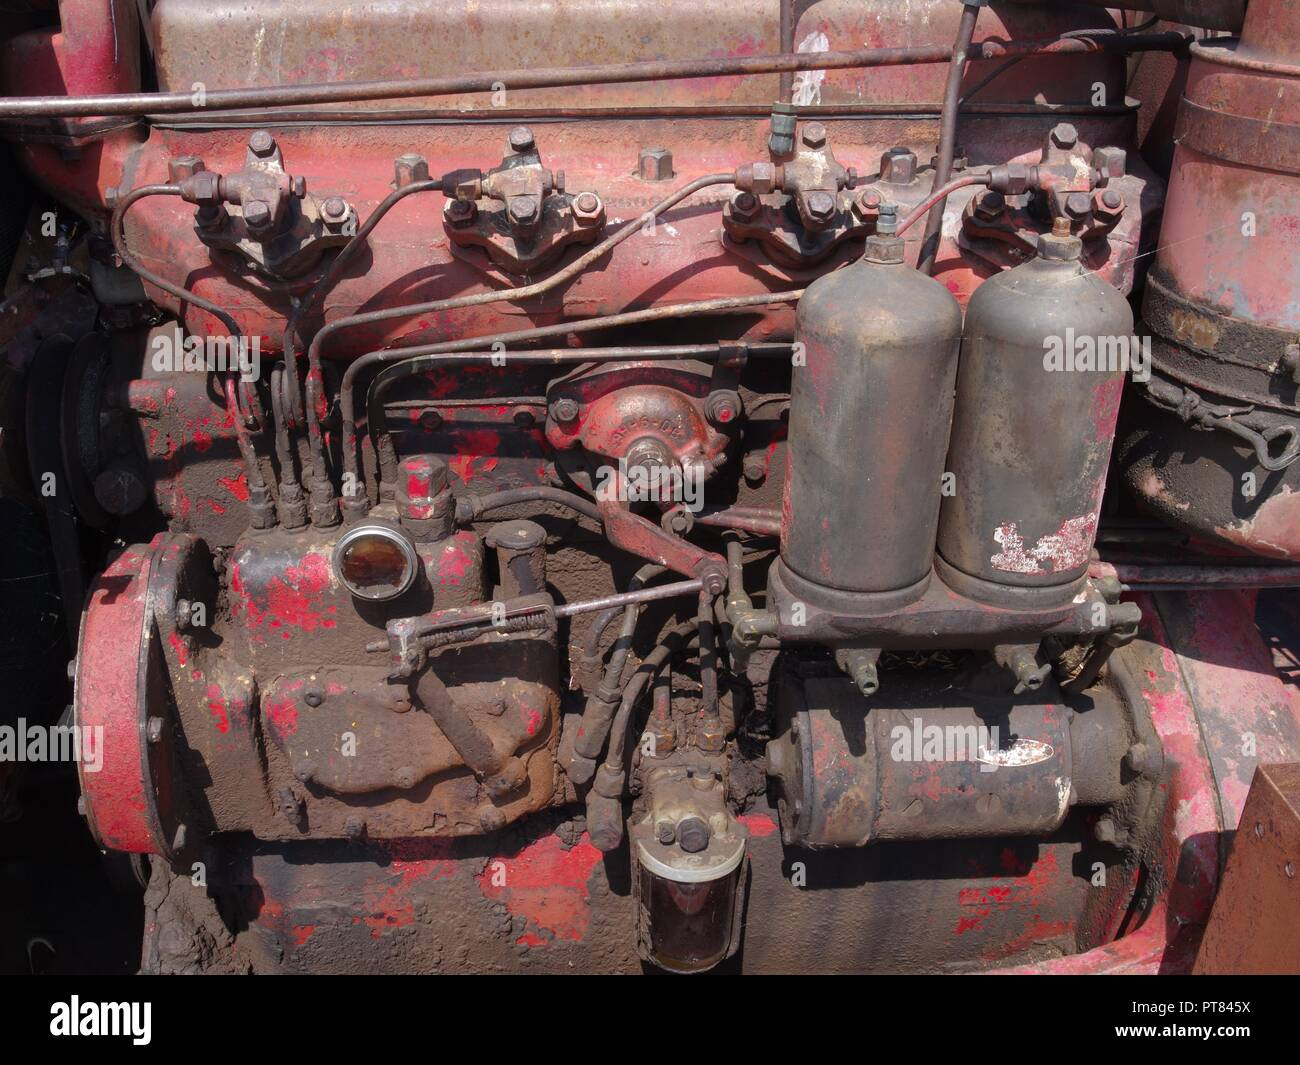 Diesel engine, farm tractor, Brian Martin RMSF, large file size Stock Photo